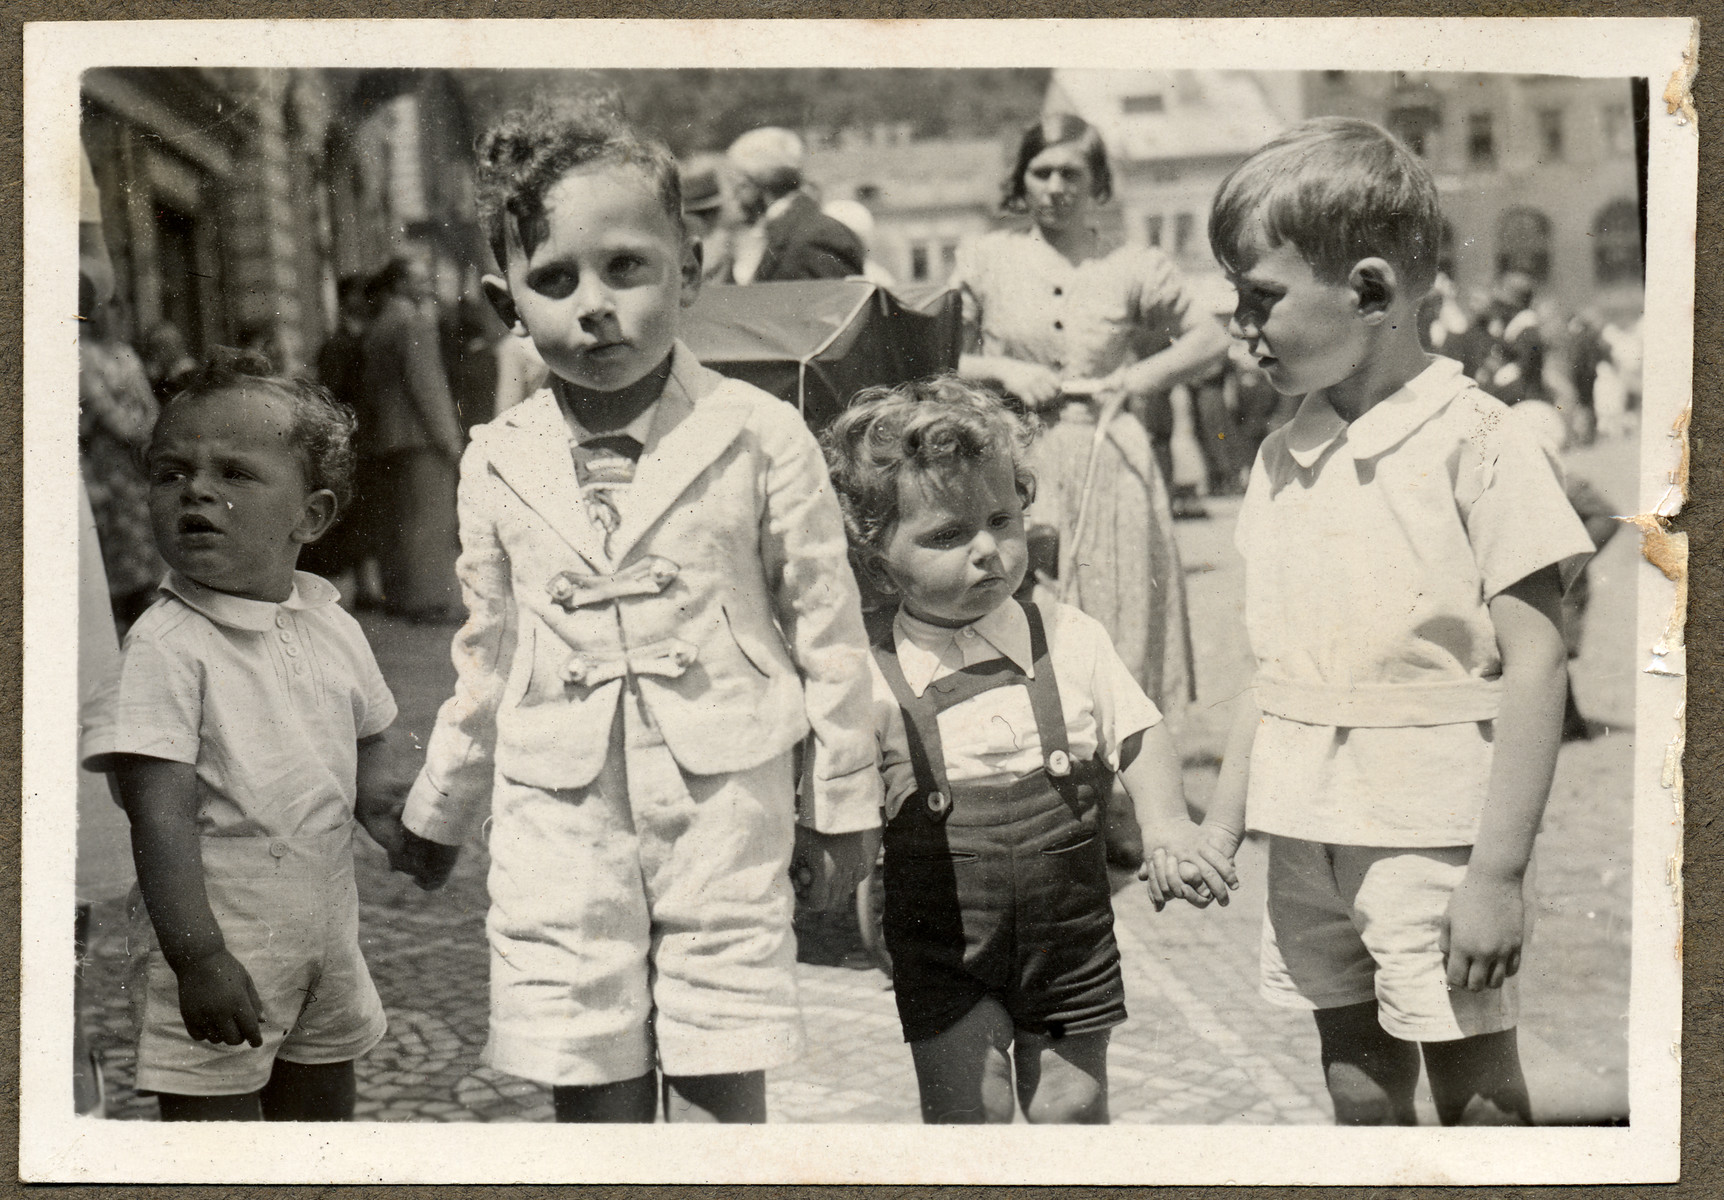 Four young children of Jewish origin participate in the town's celebration of the feast of Corpus Christi on the main square in Nachod.  Pictured from left to right are Tommy Beck, son of Rudolf and Vilma Beck who perished in Birkenau; Michal Kraus;  Max Michael Goldschmid who survived the war in Palestine and Ivan Polak, who perished in Dachau.